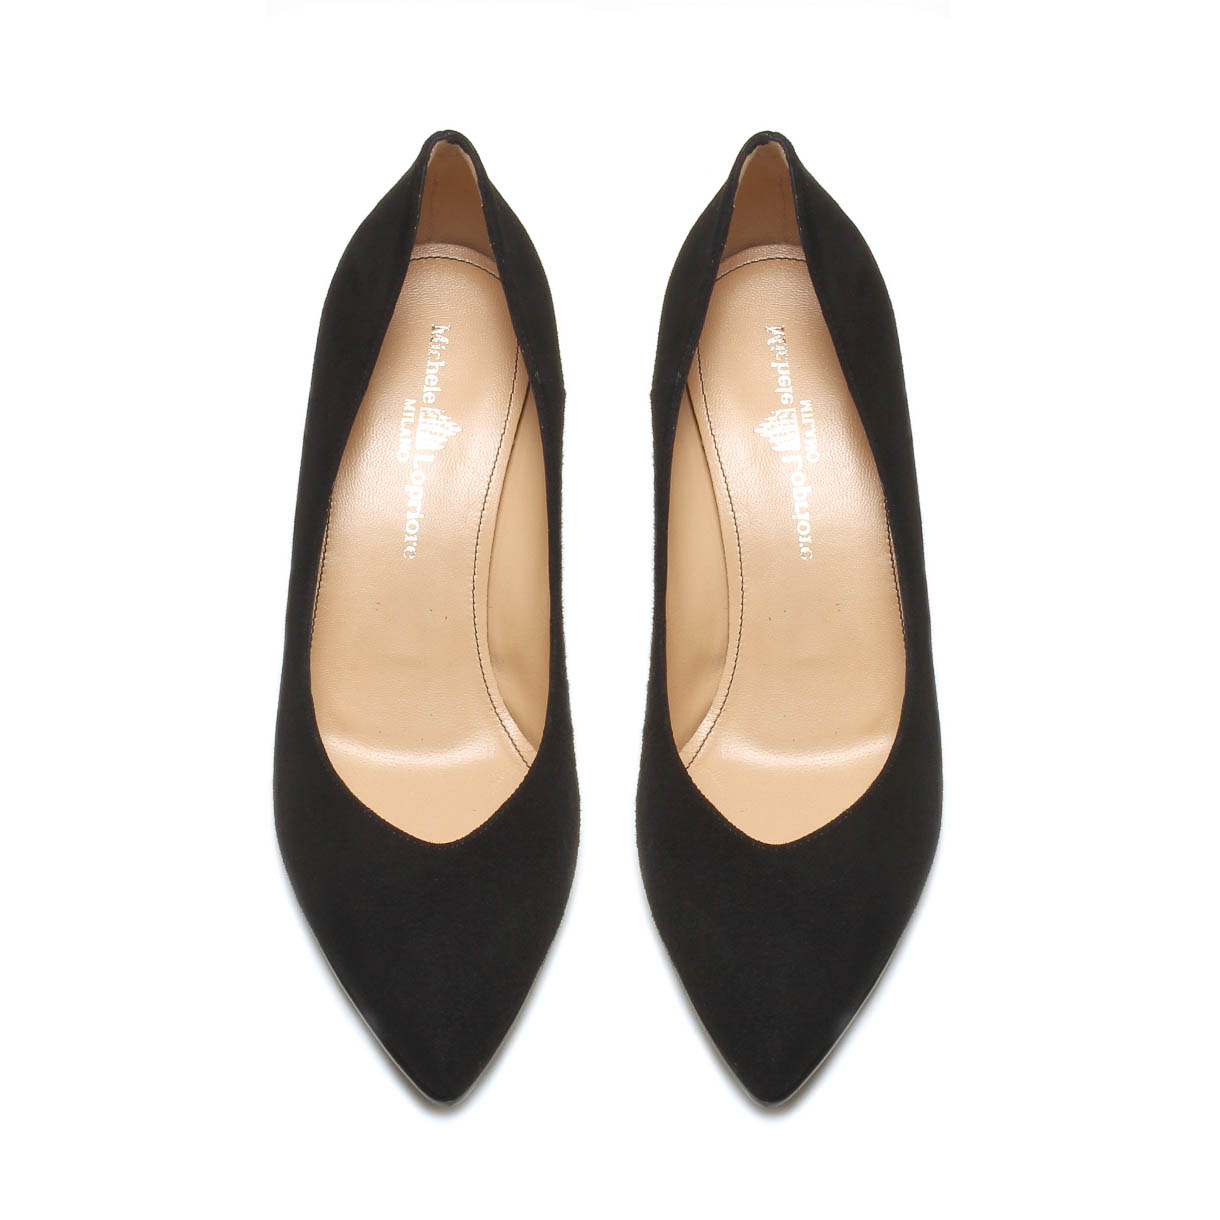 MICHELE LOPRIORE - E33334 - Suede décolleté with spool heel - 002